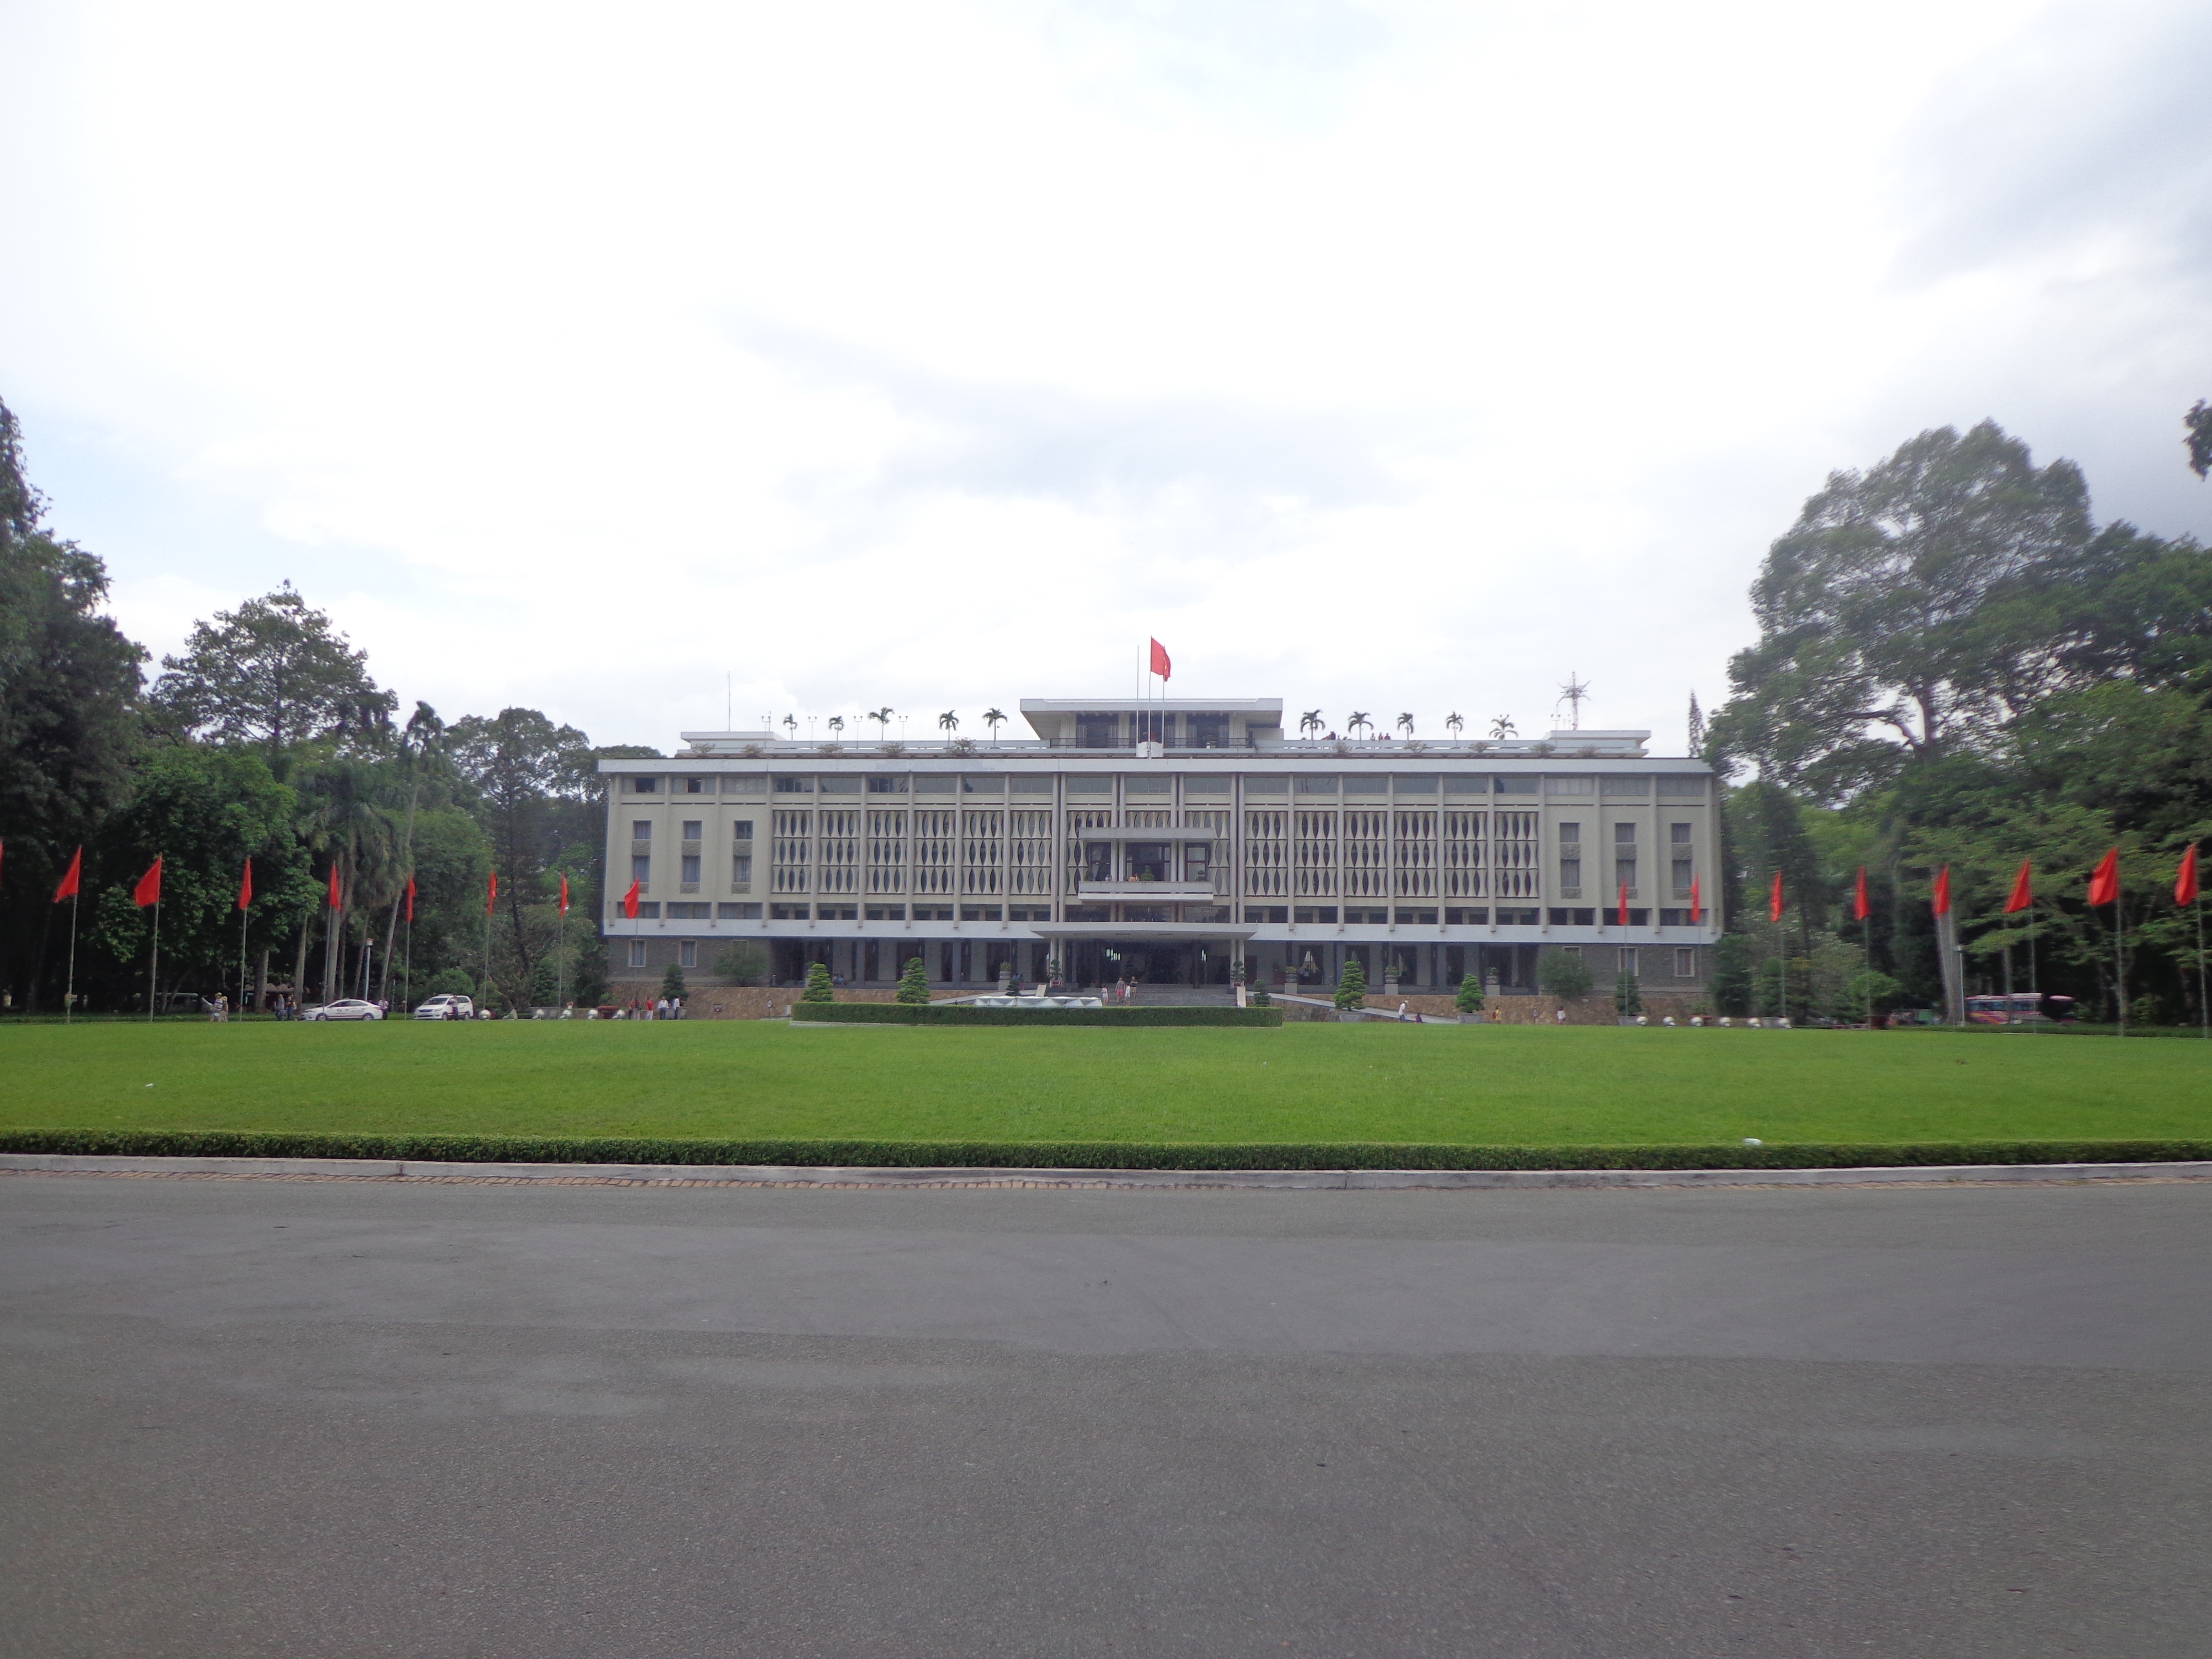 The independence palace. I shot this just before the guard asked us to vacate the region near the exit gate.